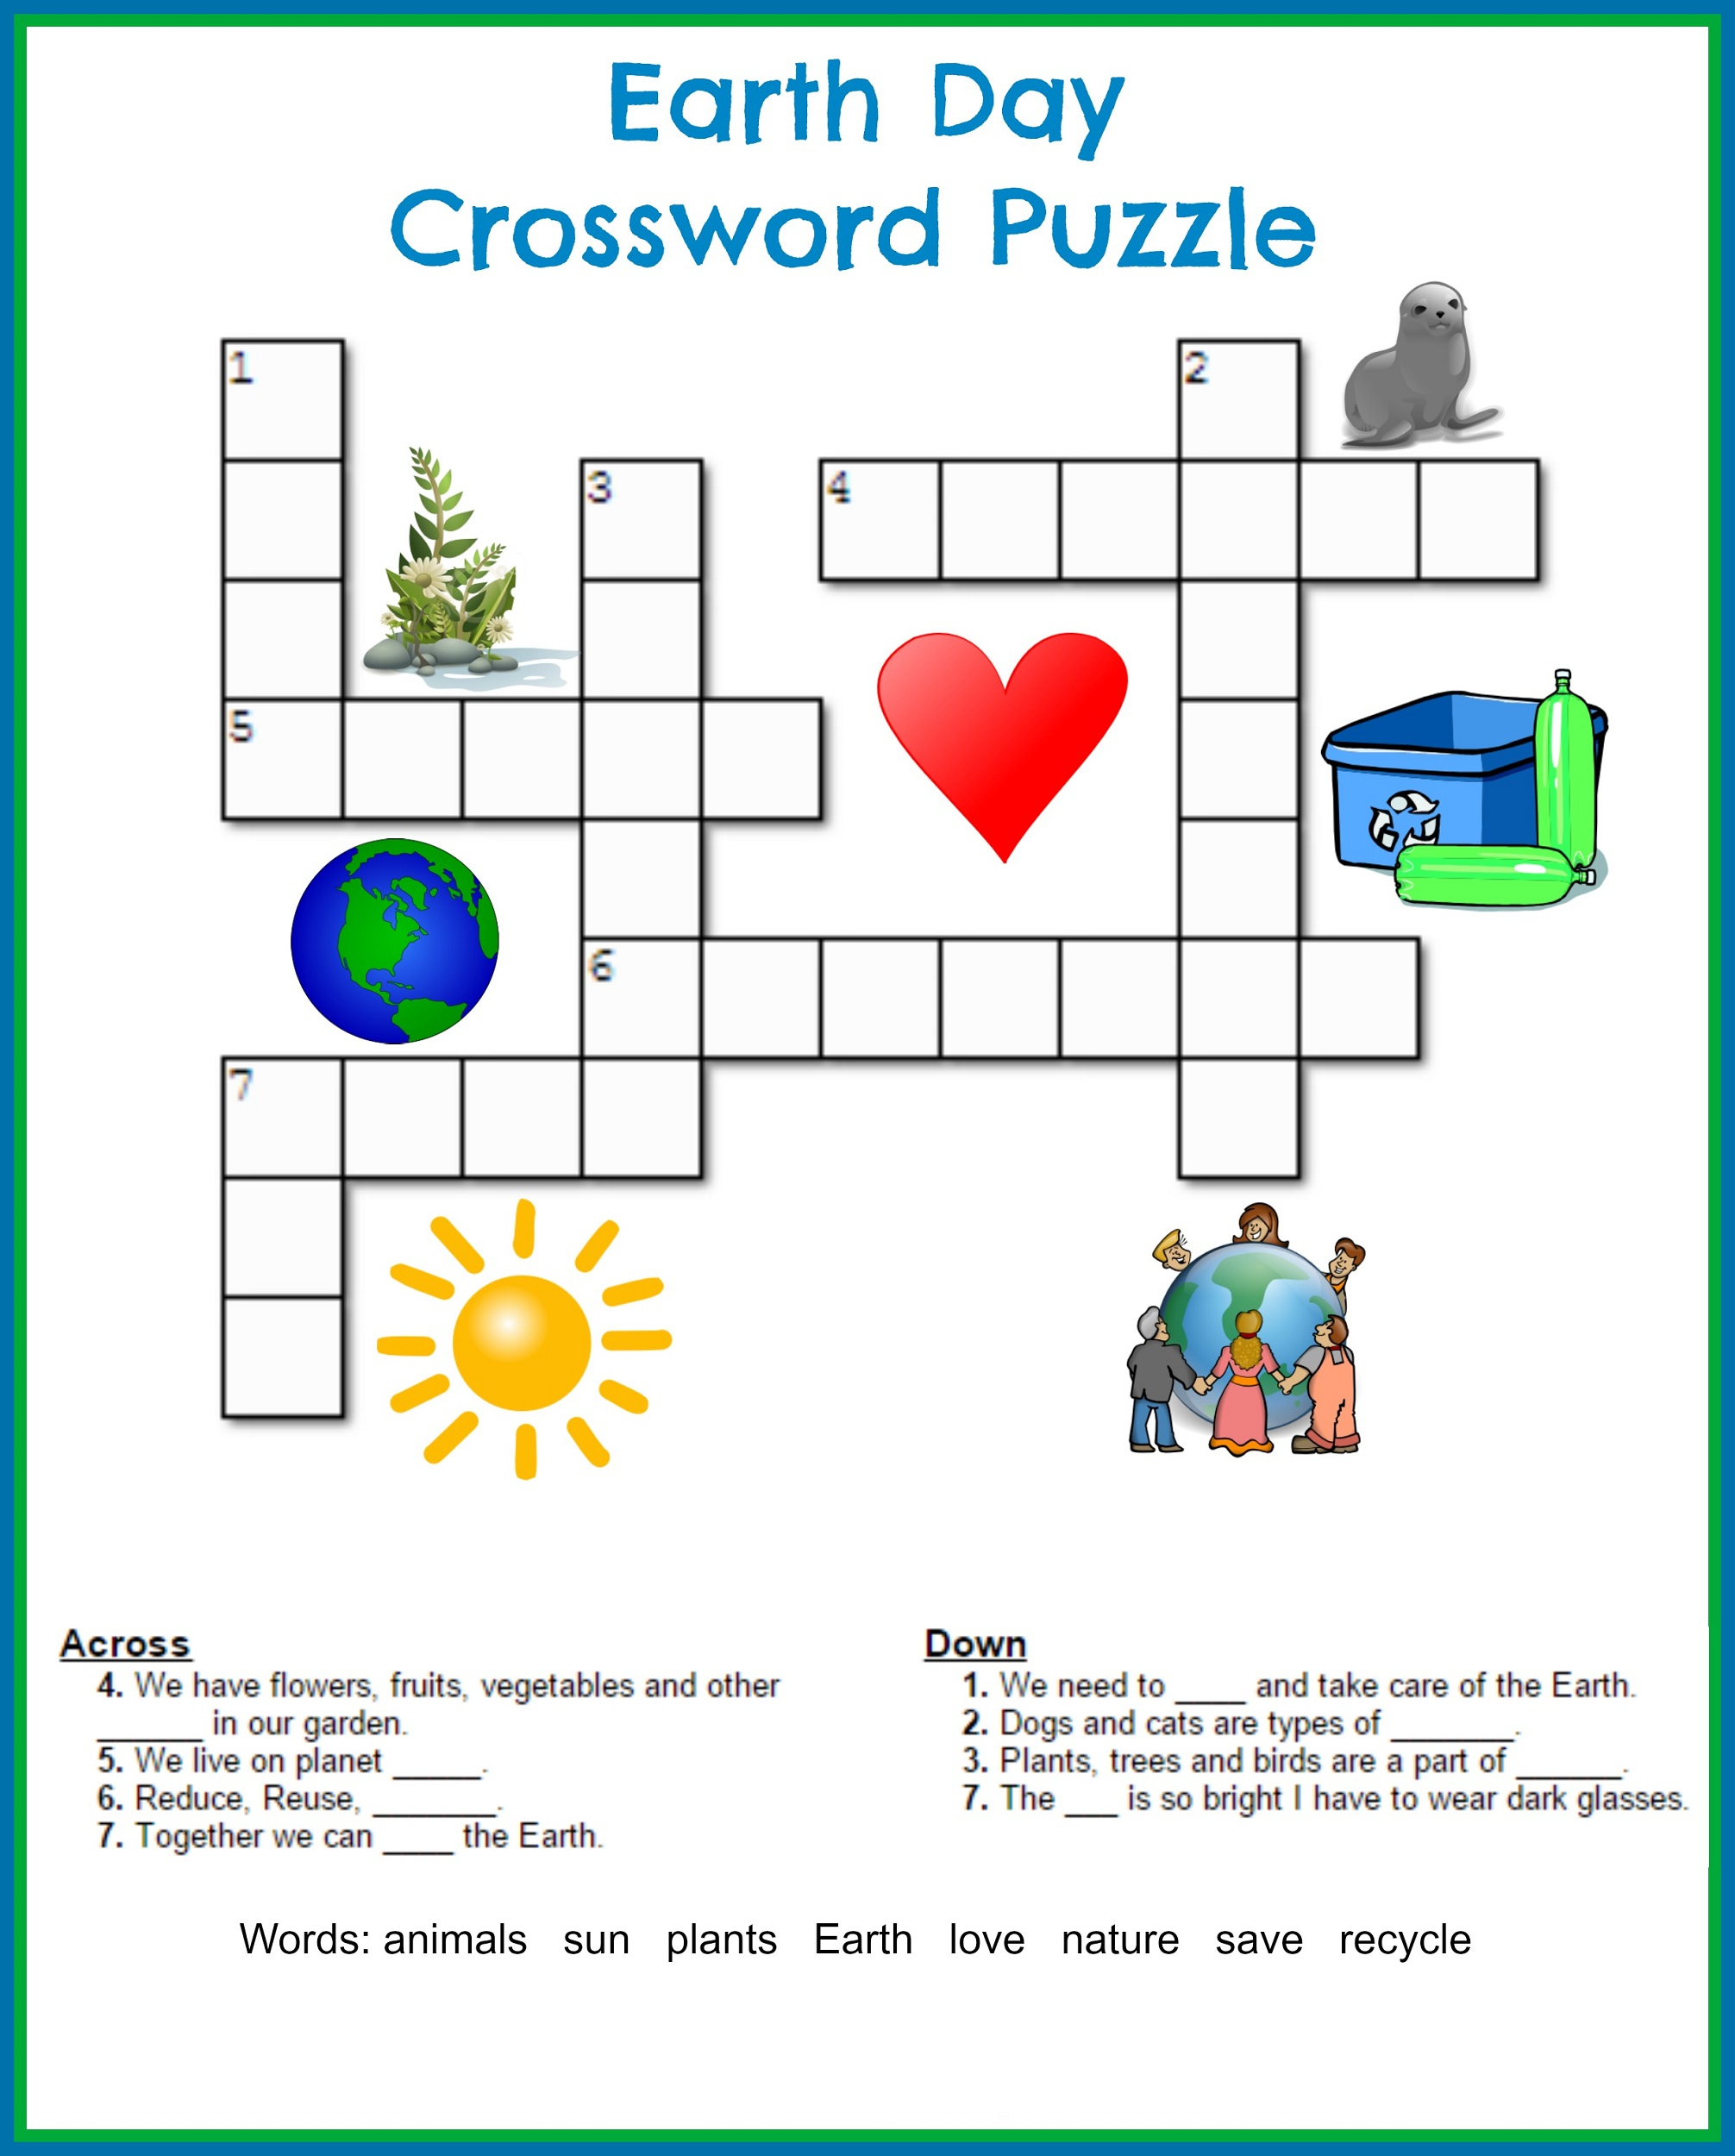 Printable Crosswords Puzzles Kids | Activity Shelter - Printable Crossword Puzzles For Kids With Word Bank